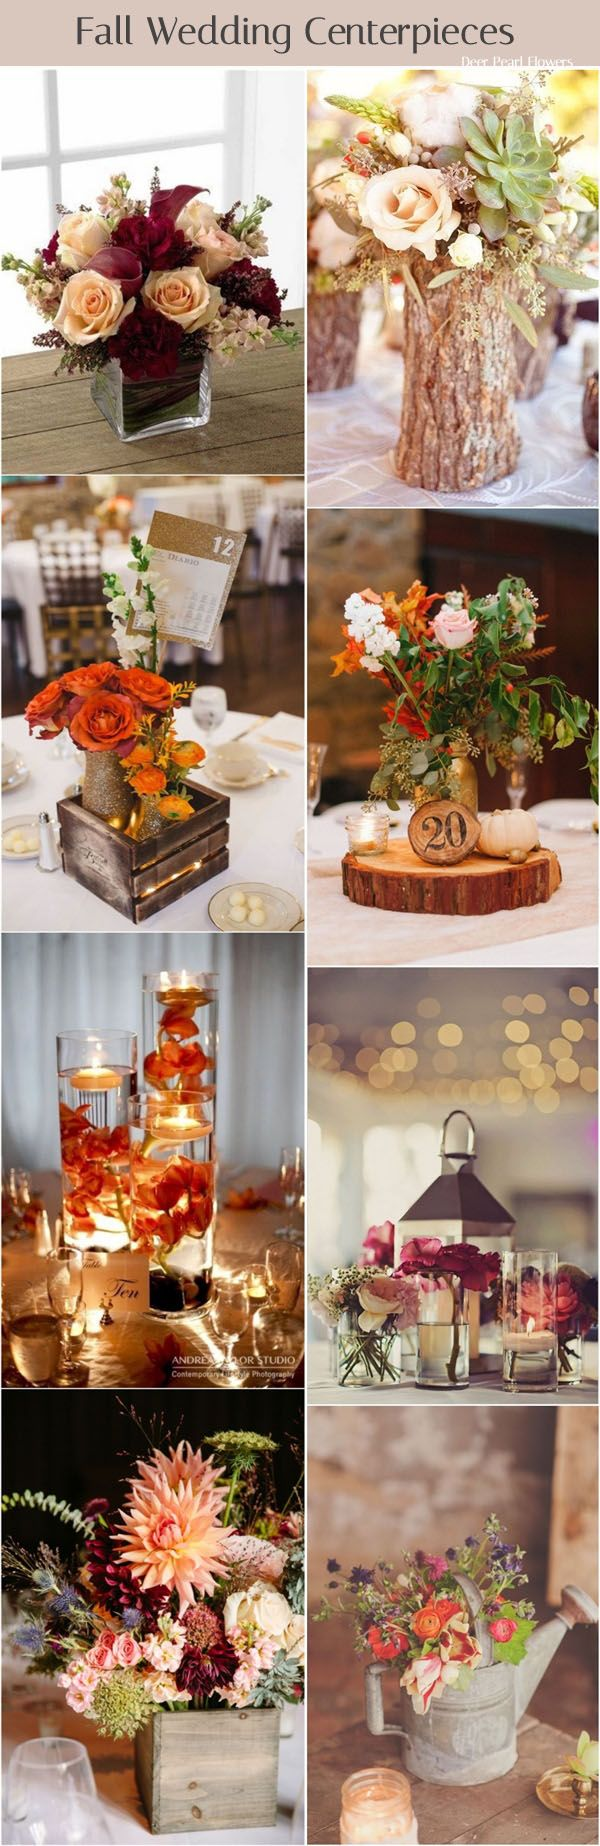 Best 25 watering can centerpieces ideas on pinterest for Autumn wedding decoration ideas